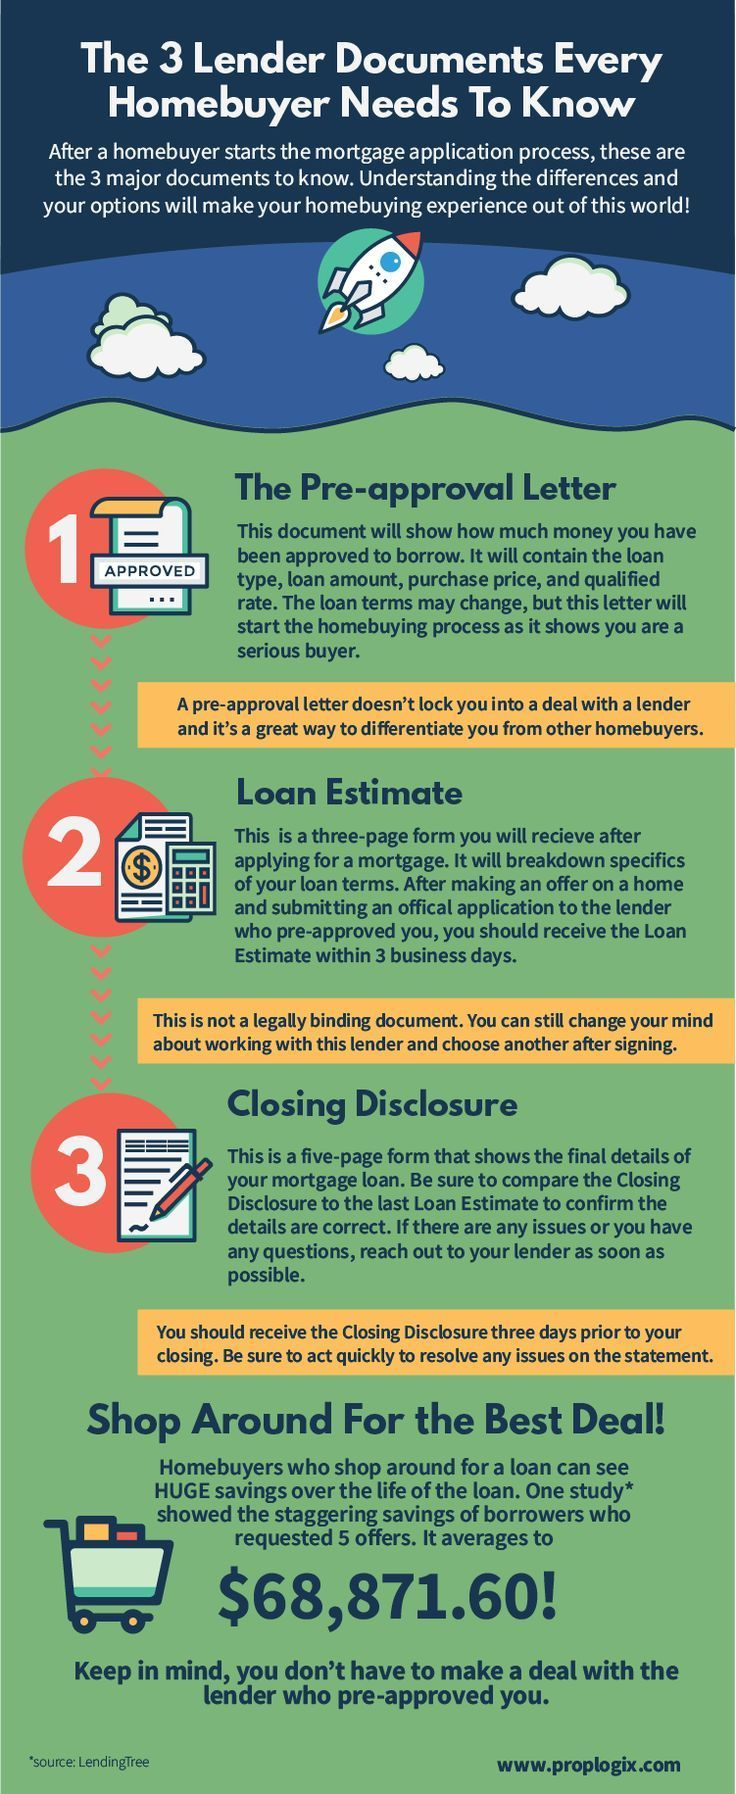 Homebuyer tips when applying for a mortgage so you get the